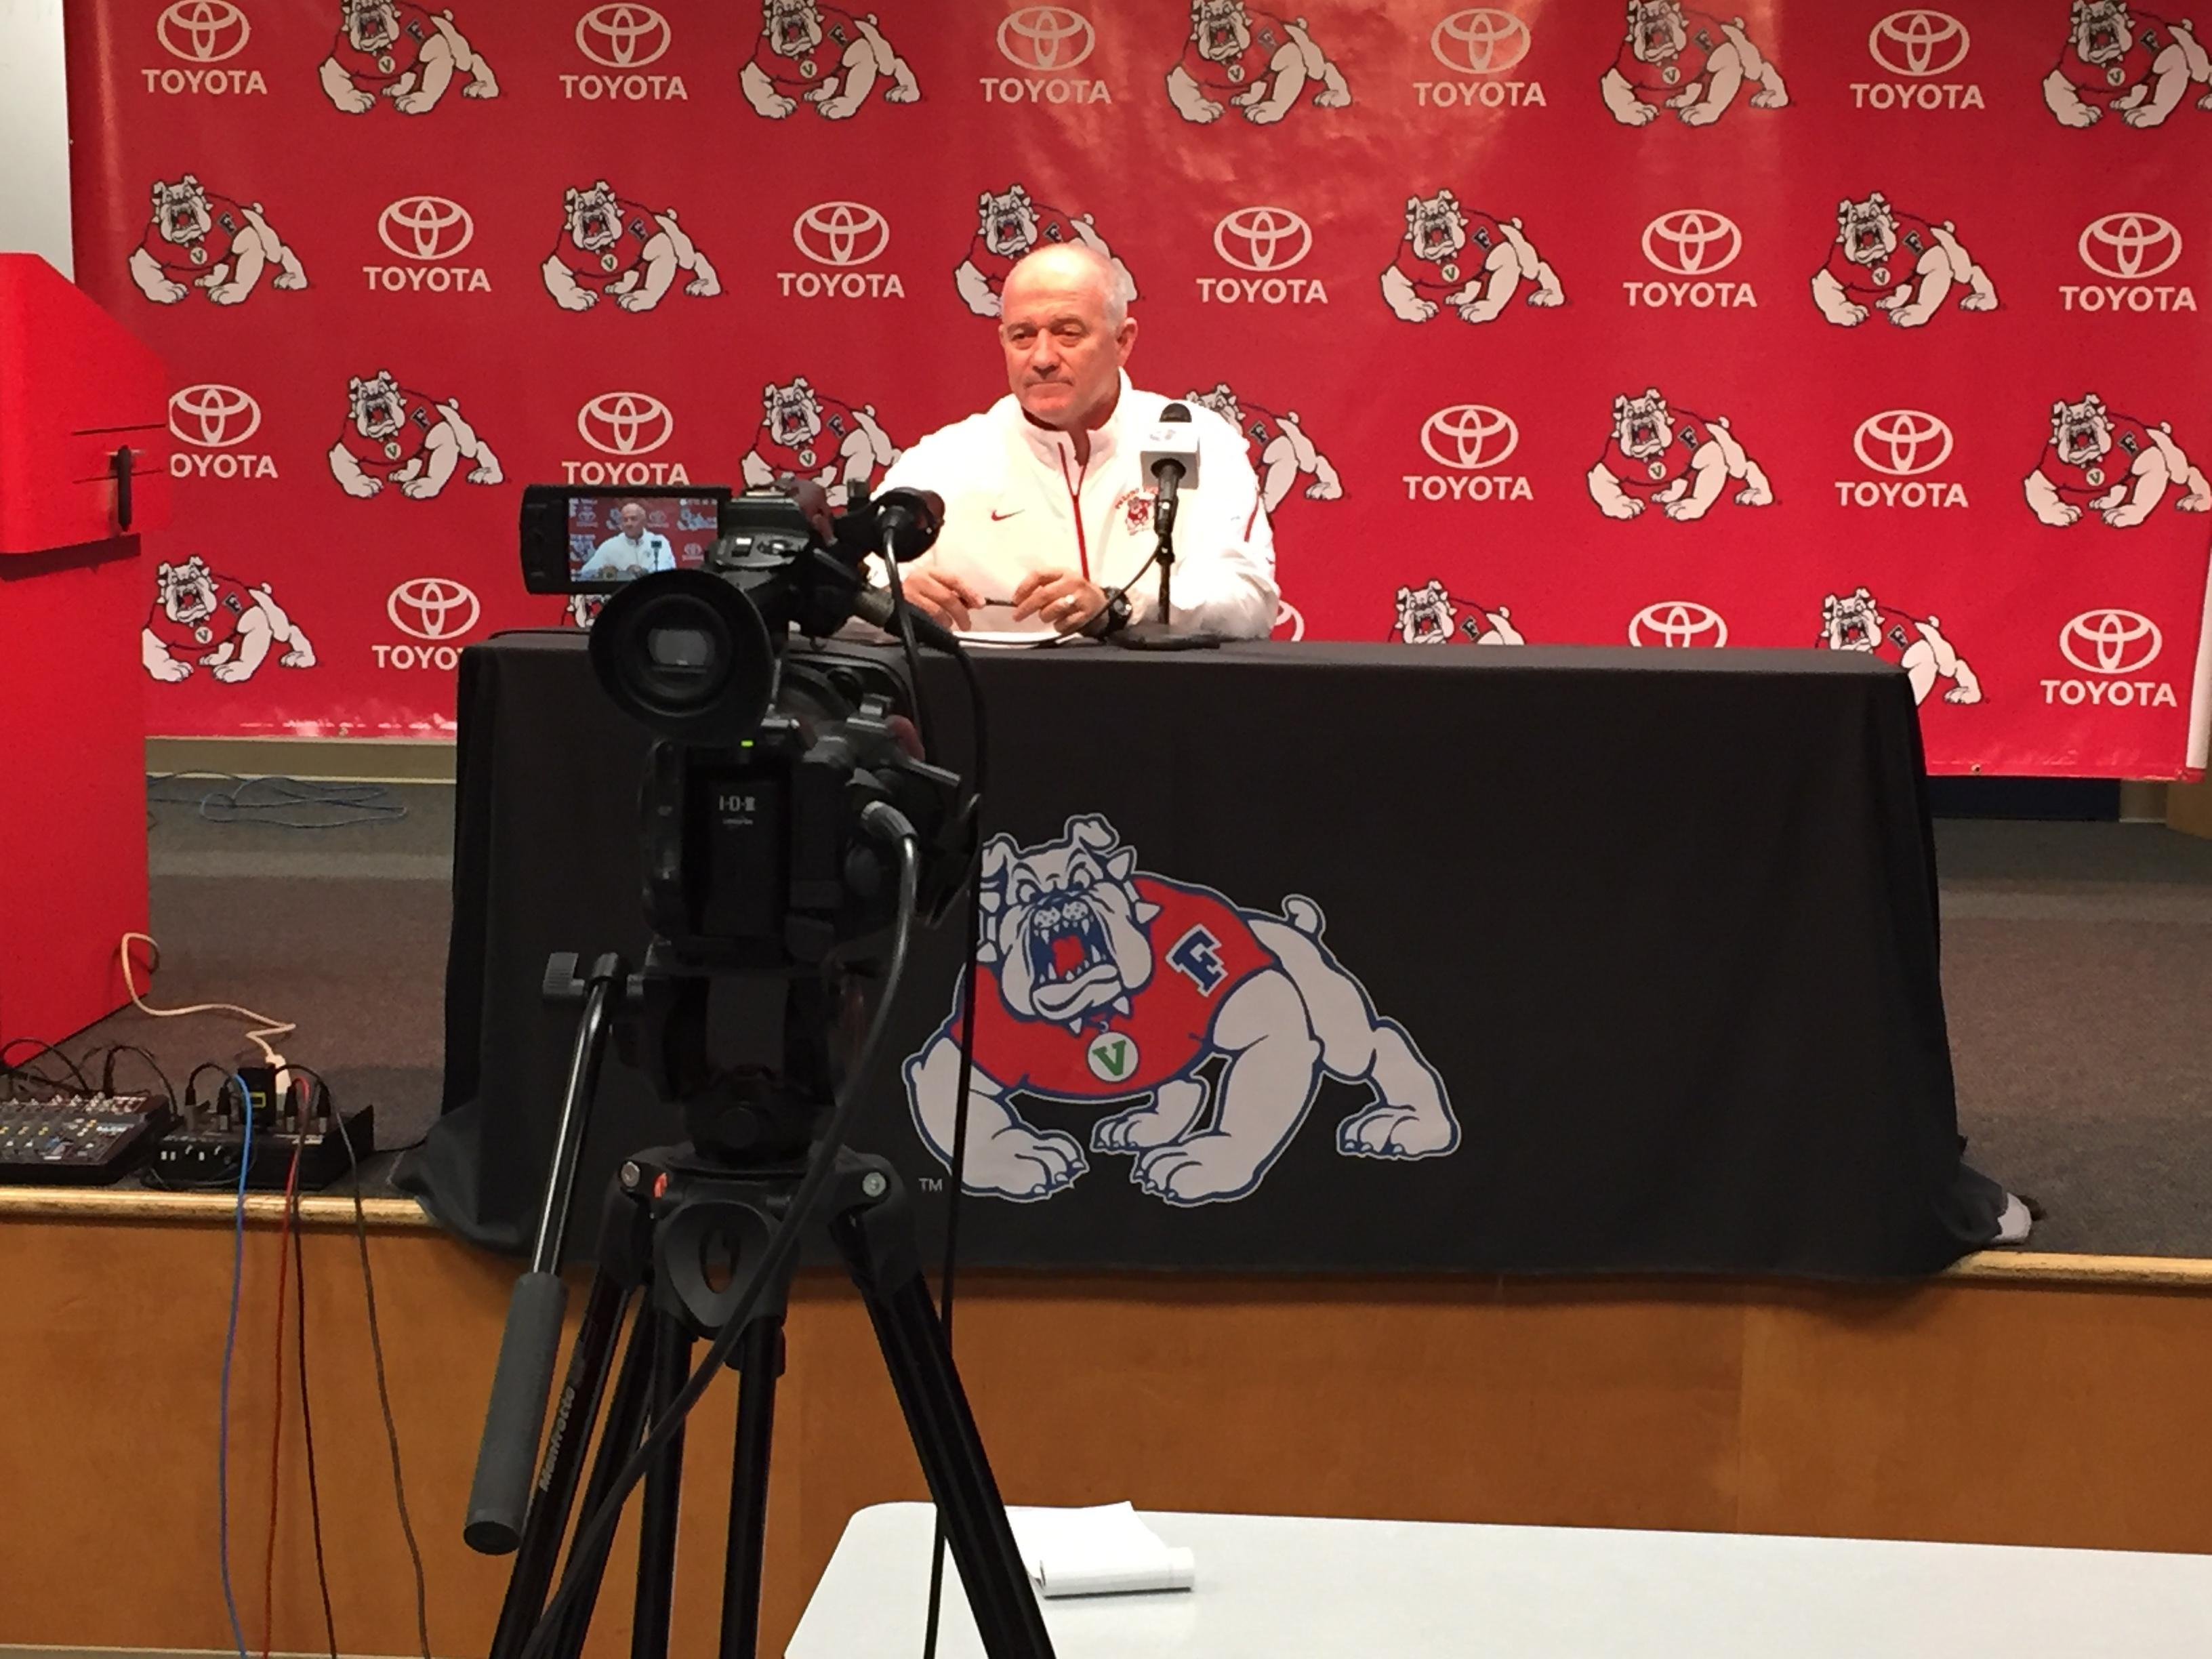 Fresno State football coach Jeff Tedford talks about his 2018 recruiting class. Of the 15 signees, 8 are from the Central Valley.<p></p>